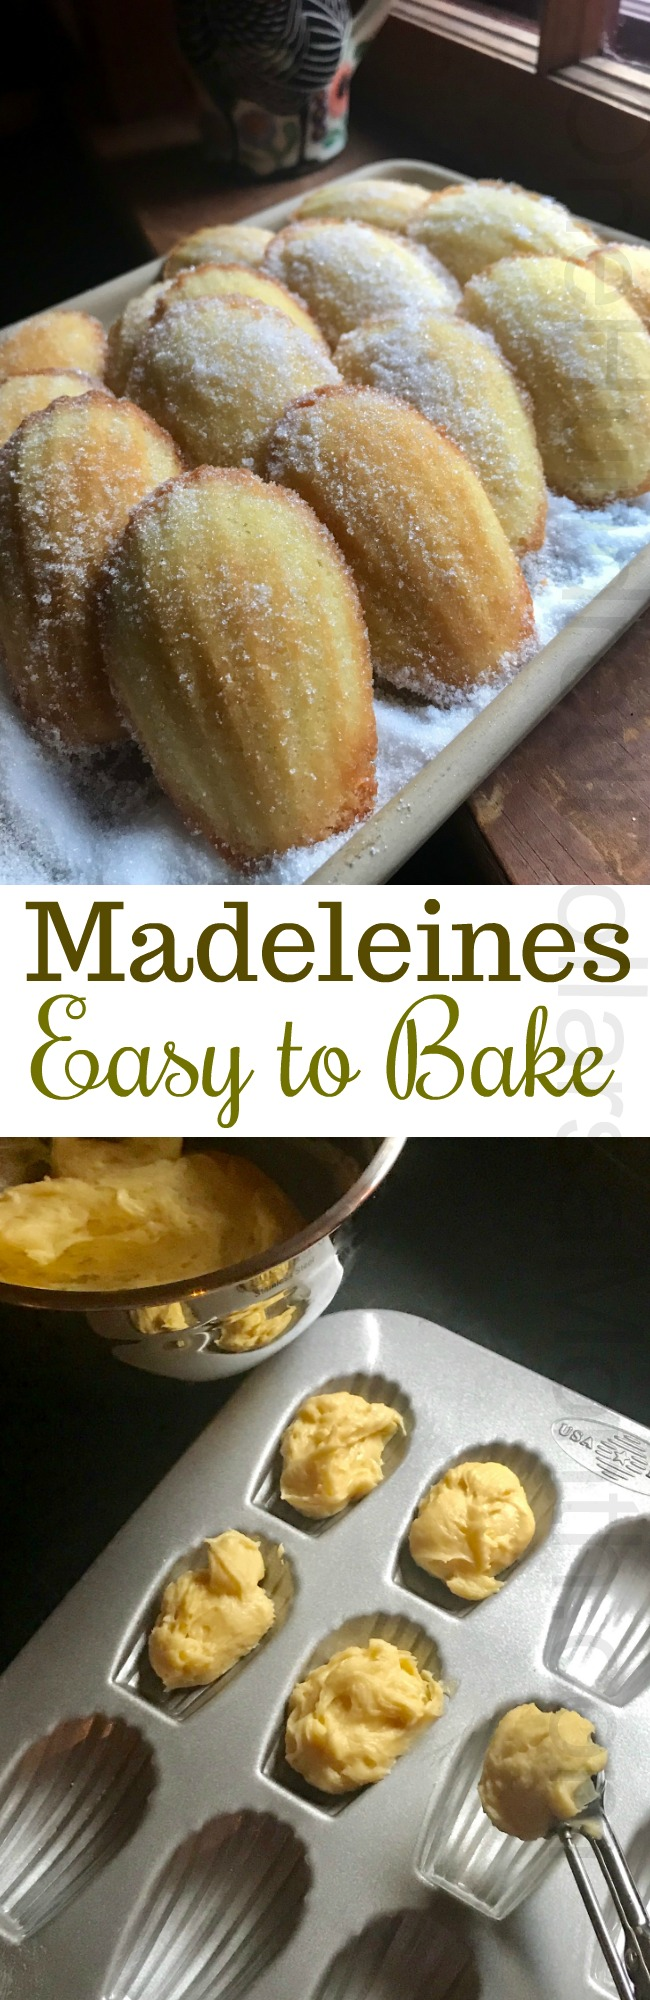 Recipe for Madeleines